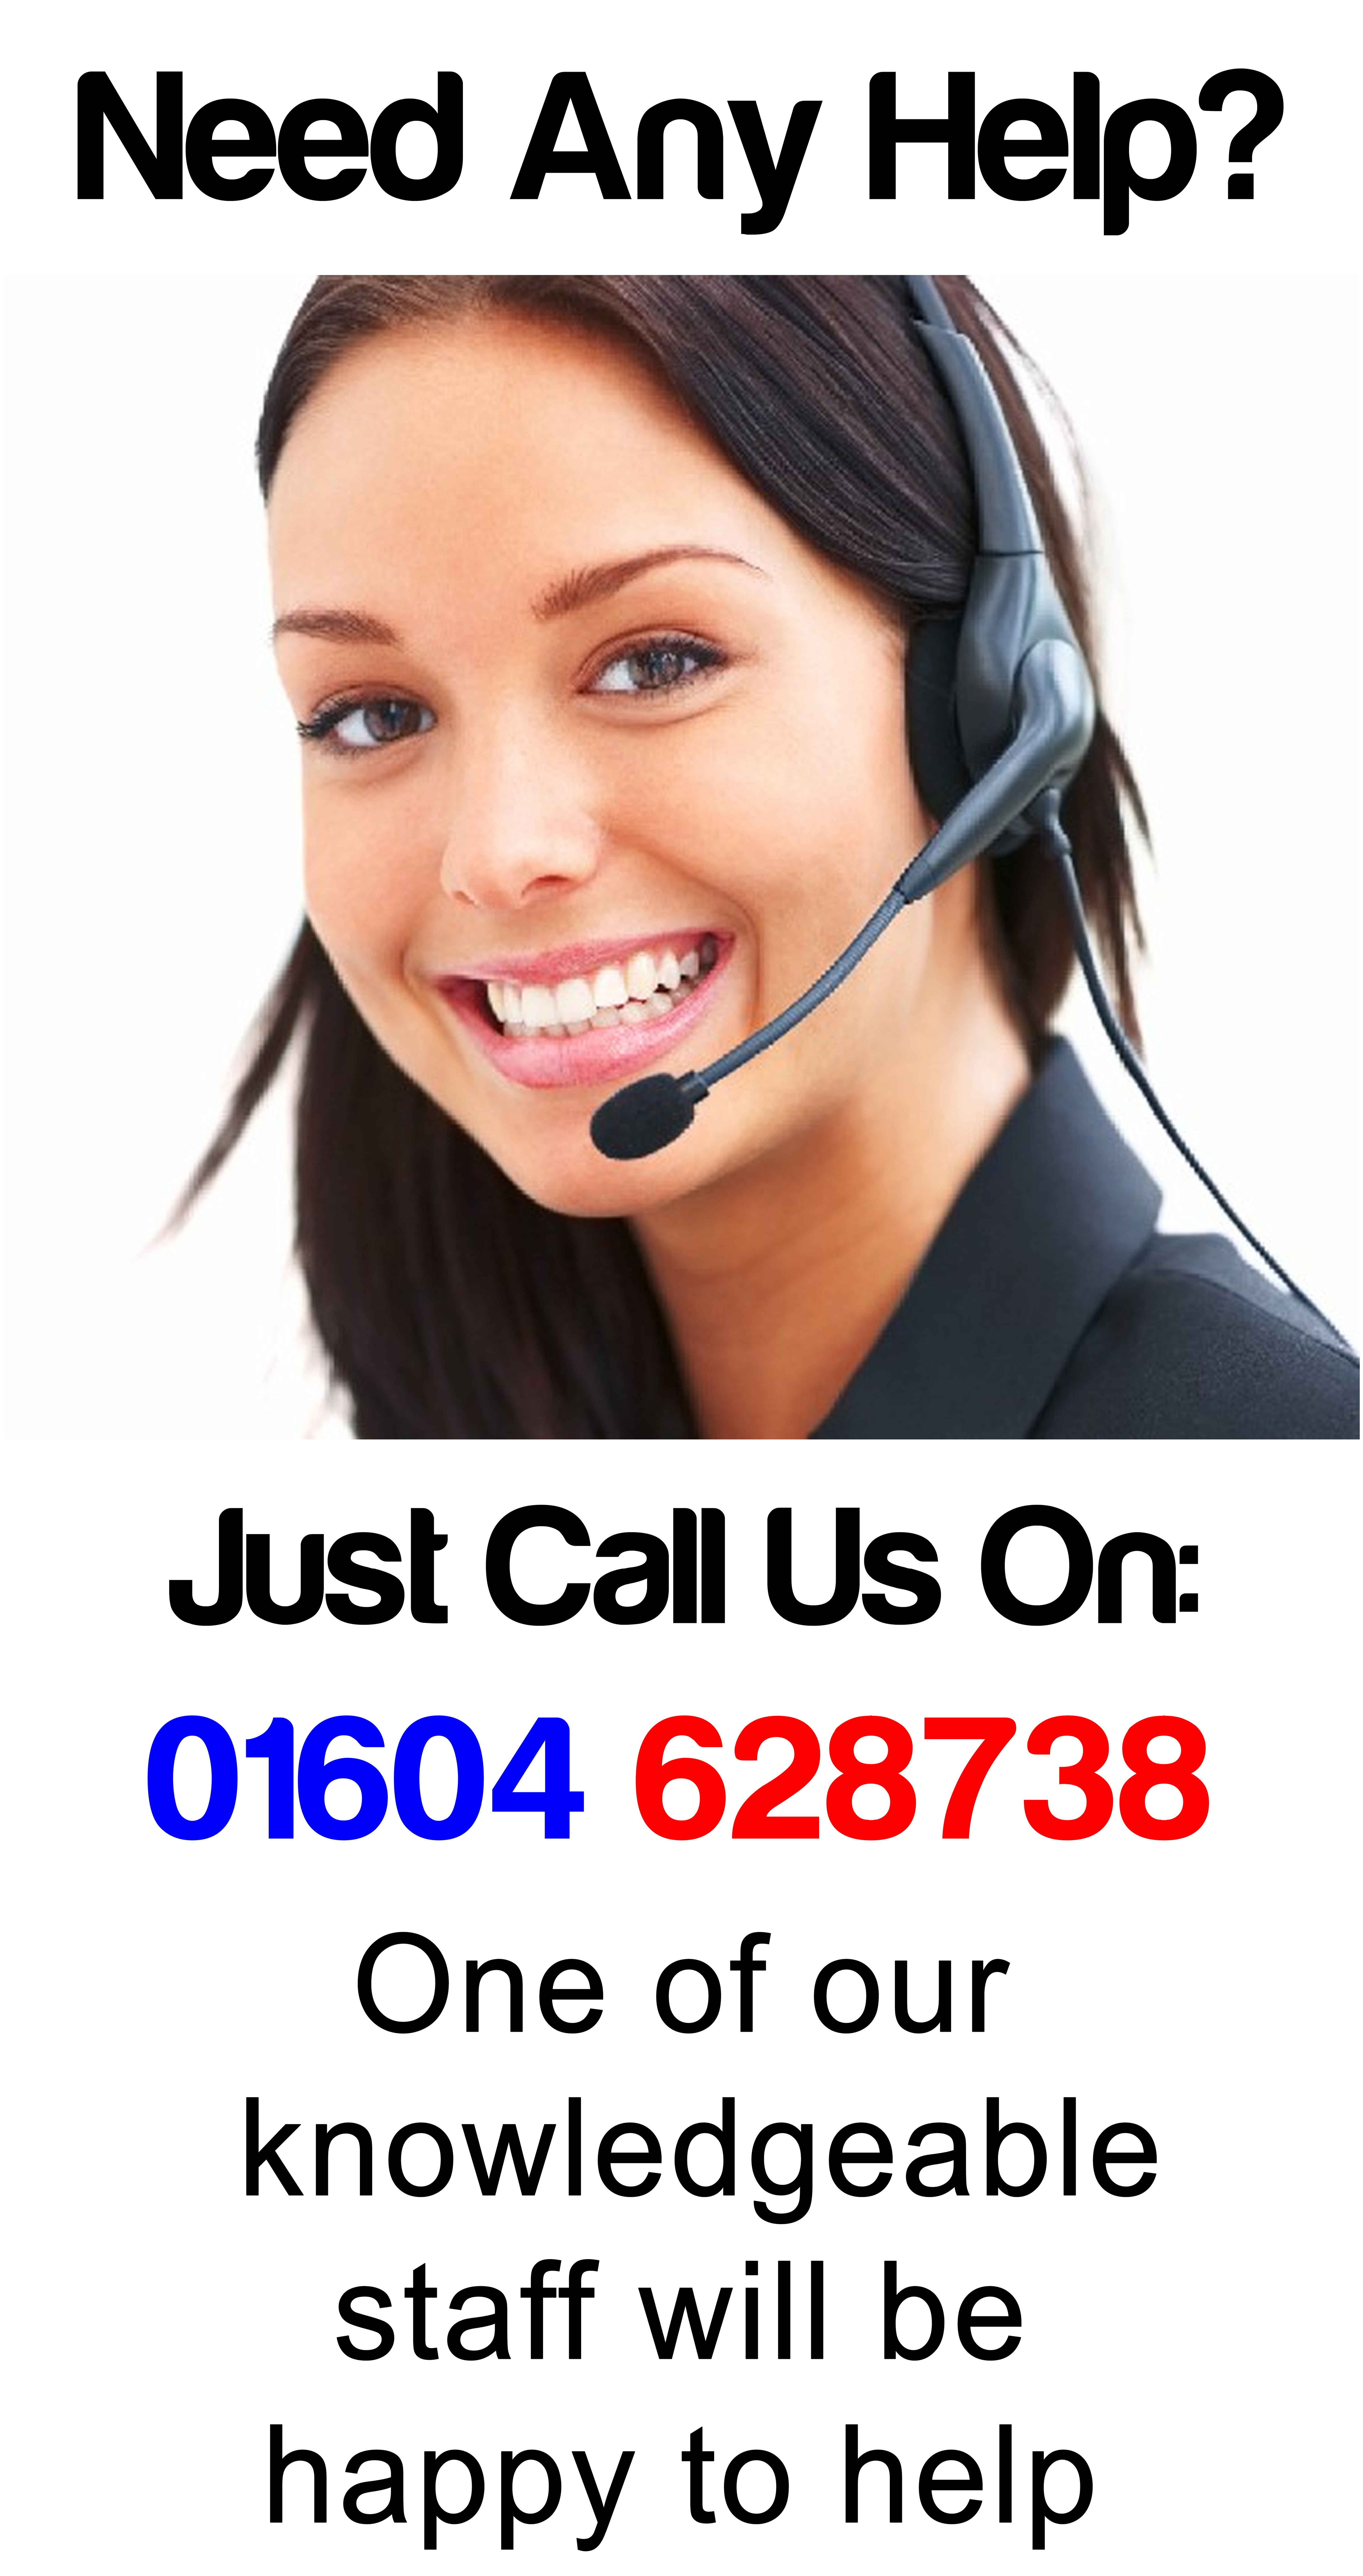 Need any help? Just call us on 01604 628738, one of our knowledgable staff will be happy to help.